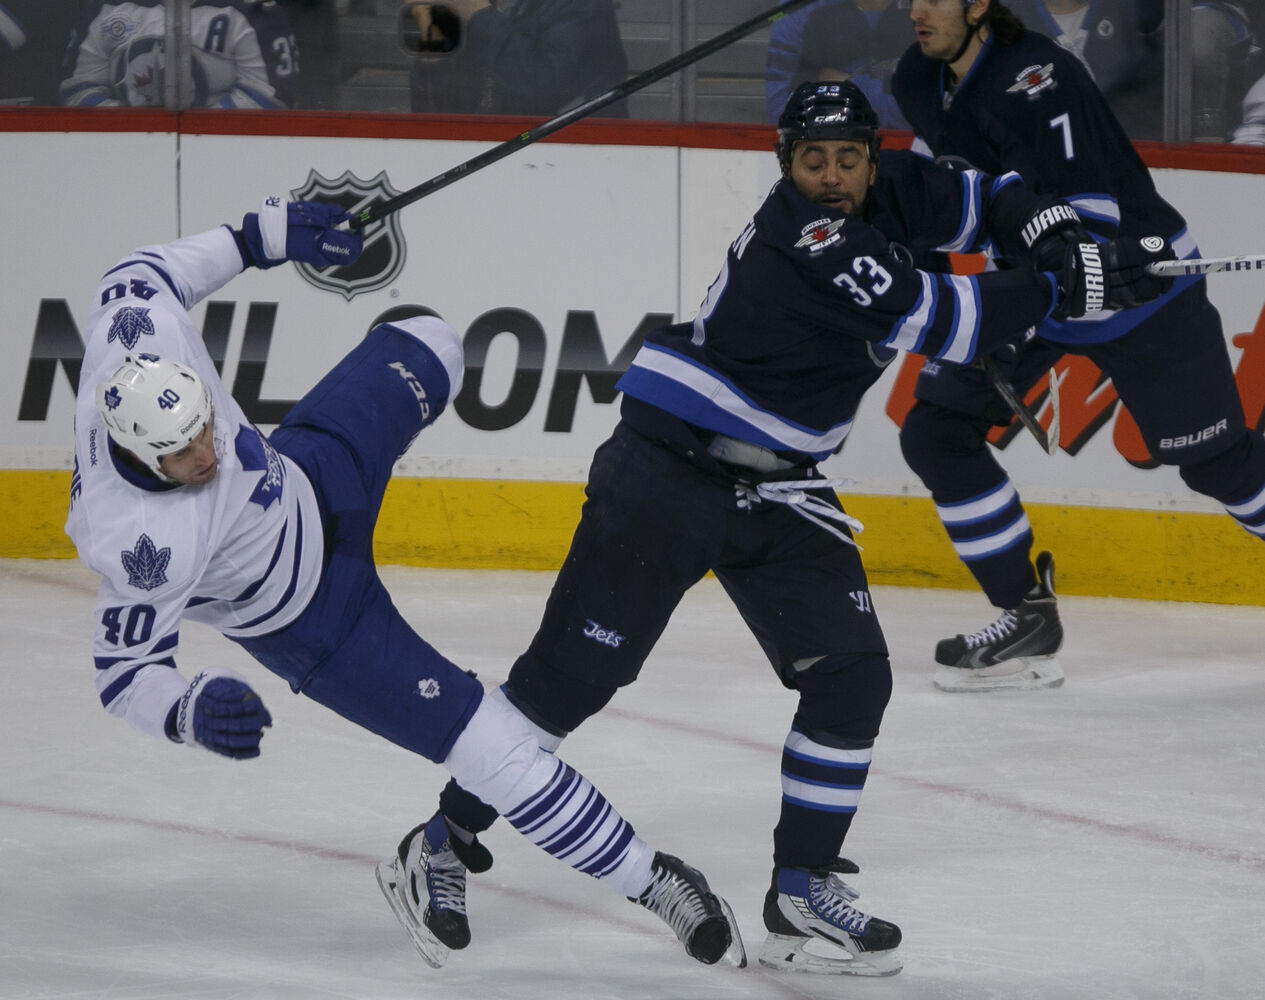 Jets' forward Dustin Byfuglien knocks down Leafs' forward Troy Bodie in the second period at MTS Centre Saturday night.  (Melissa Tait / Winnipeg Free Press)